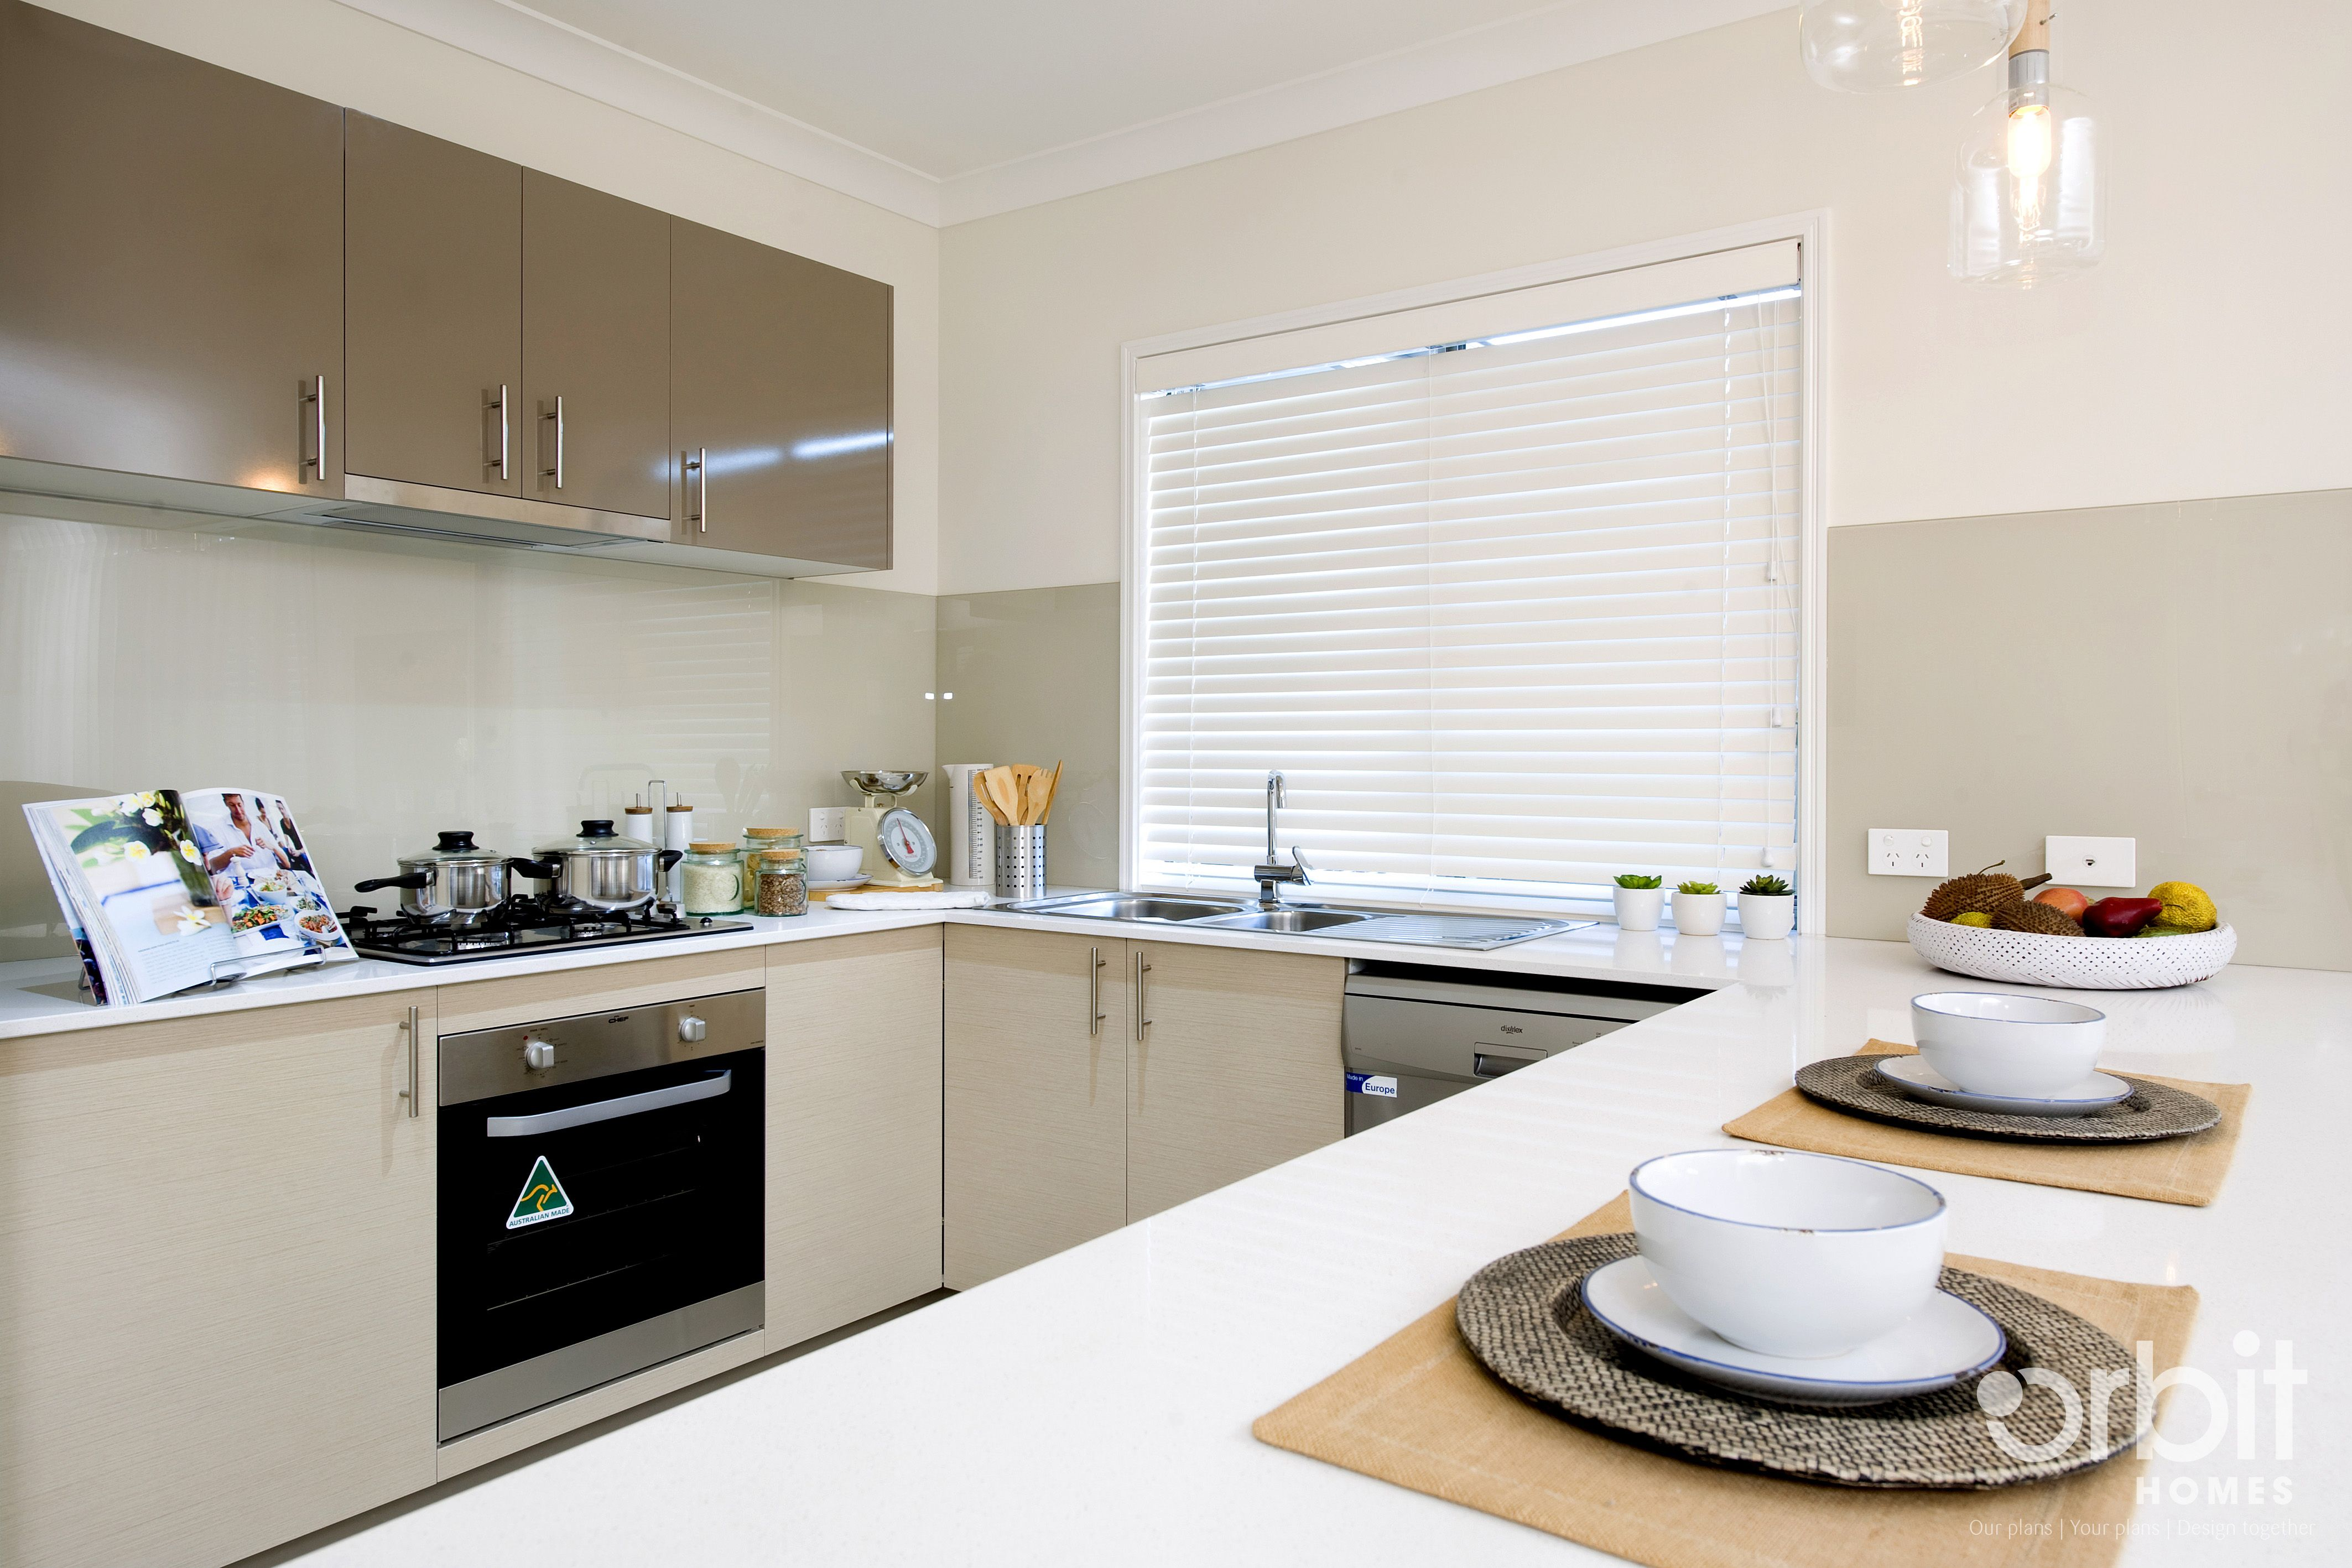 A ultra modern and sleek kitchen design, with stainless